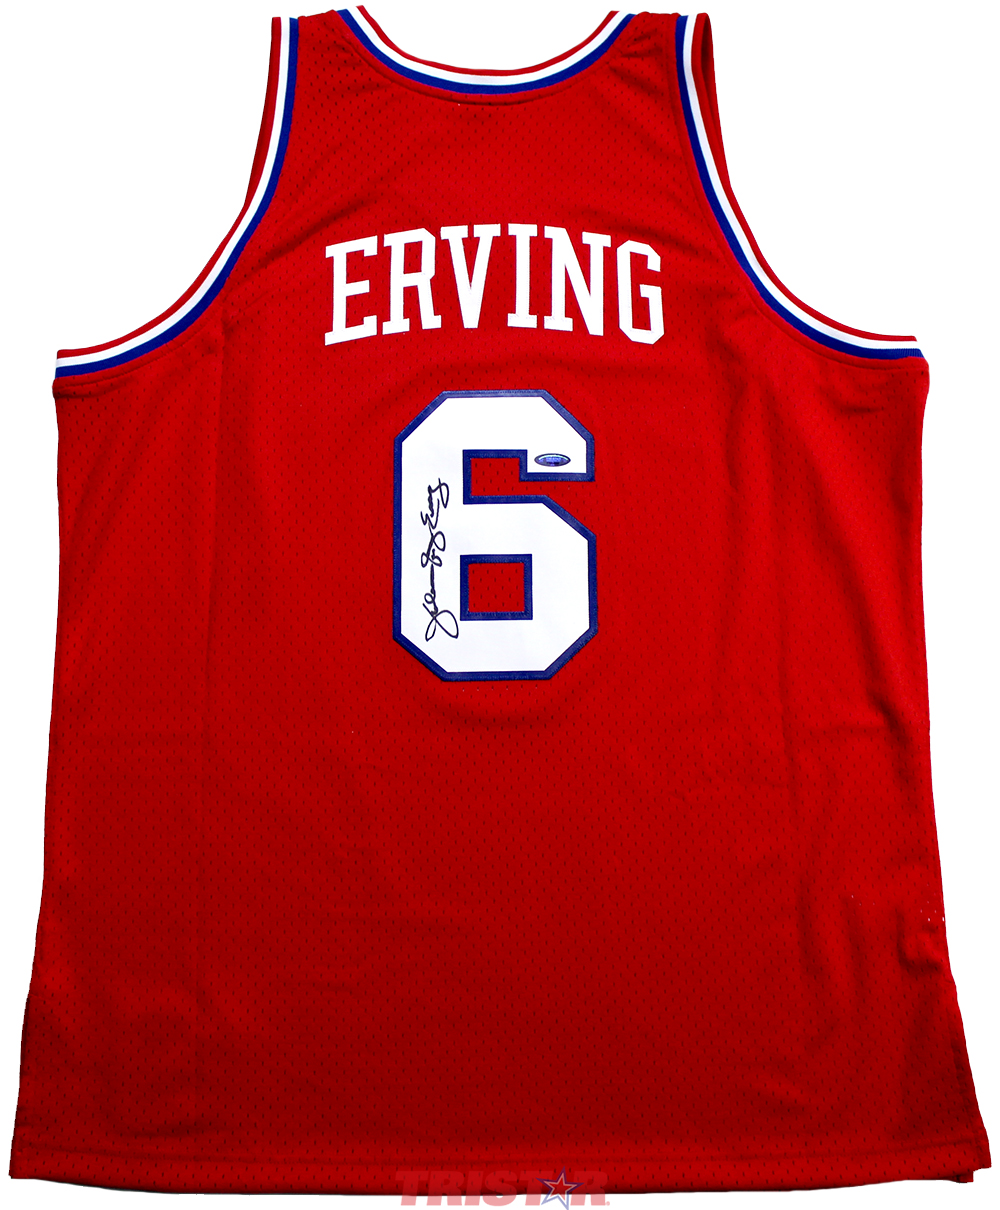 julius erving jersey